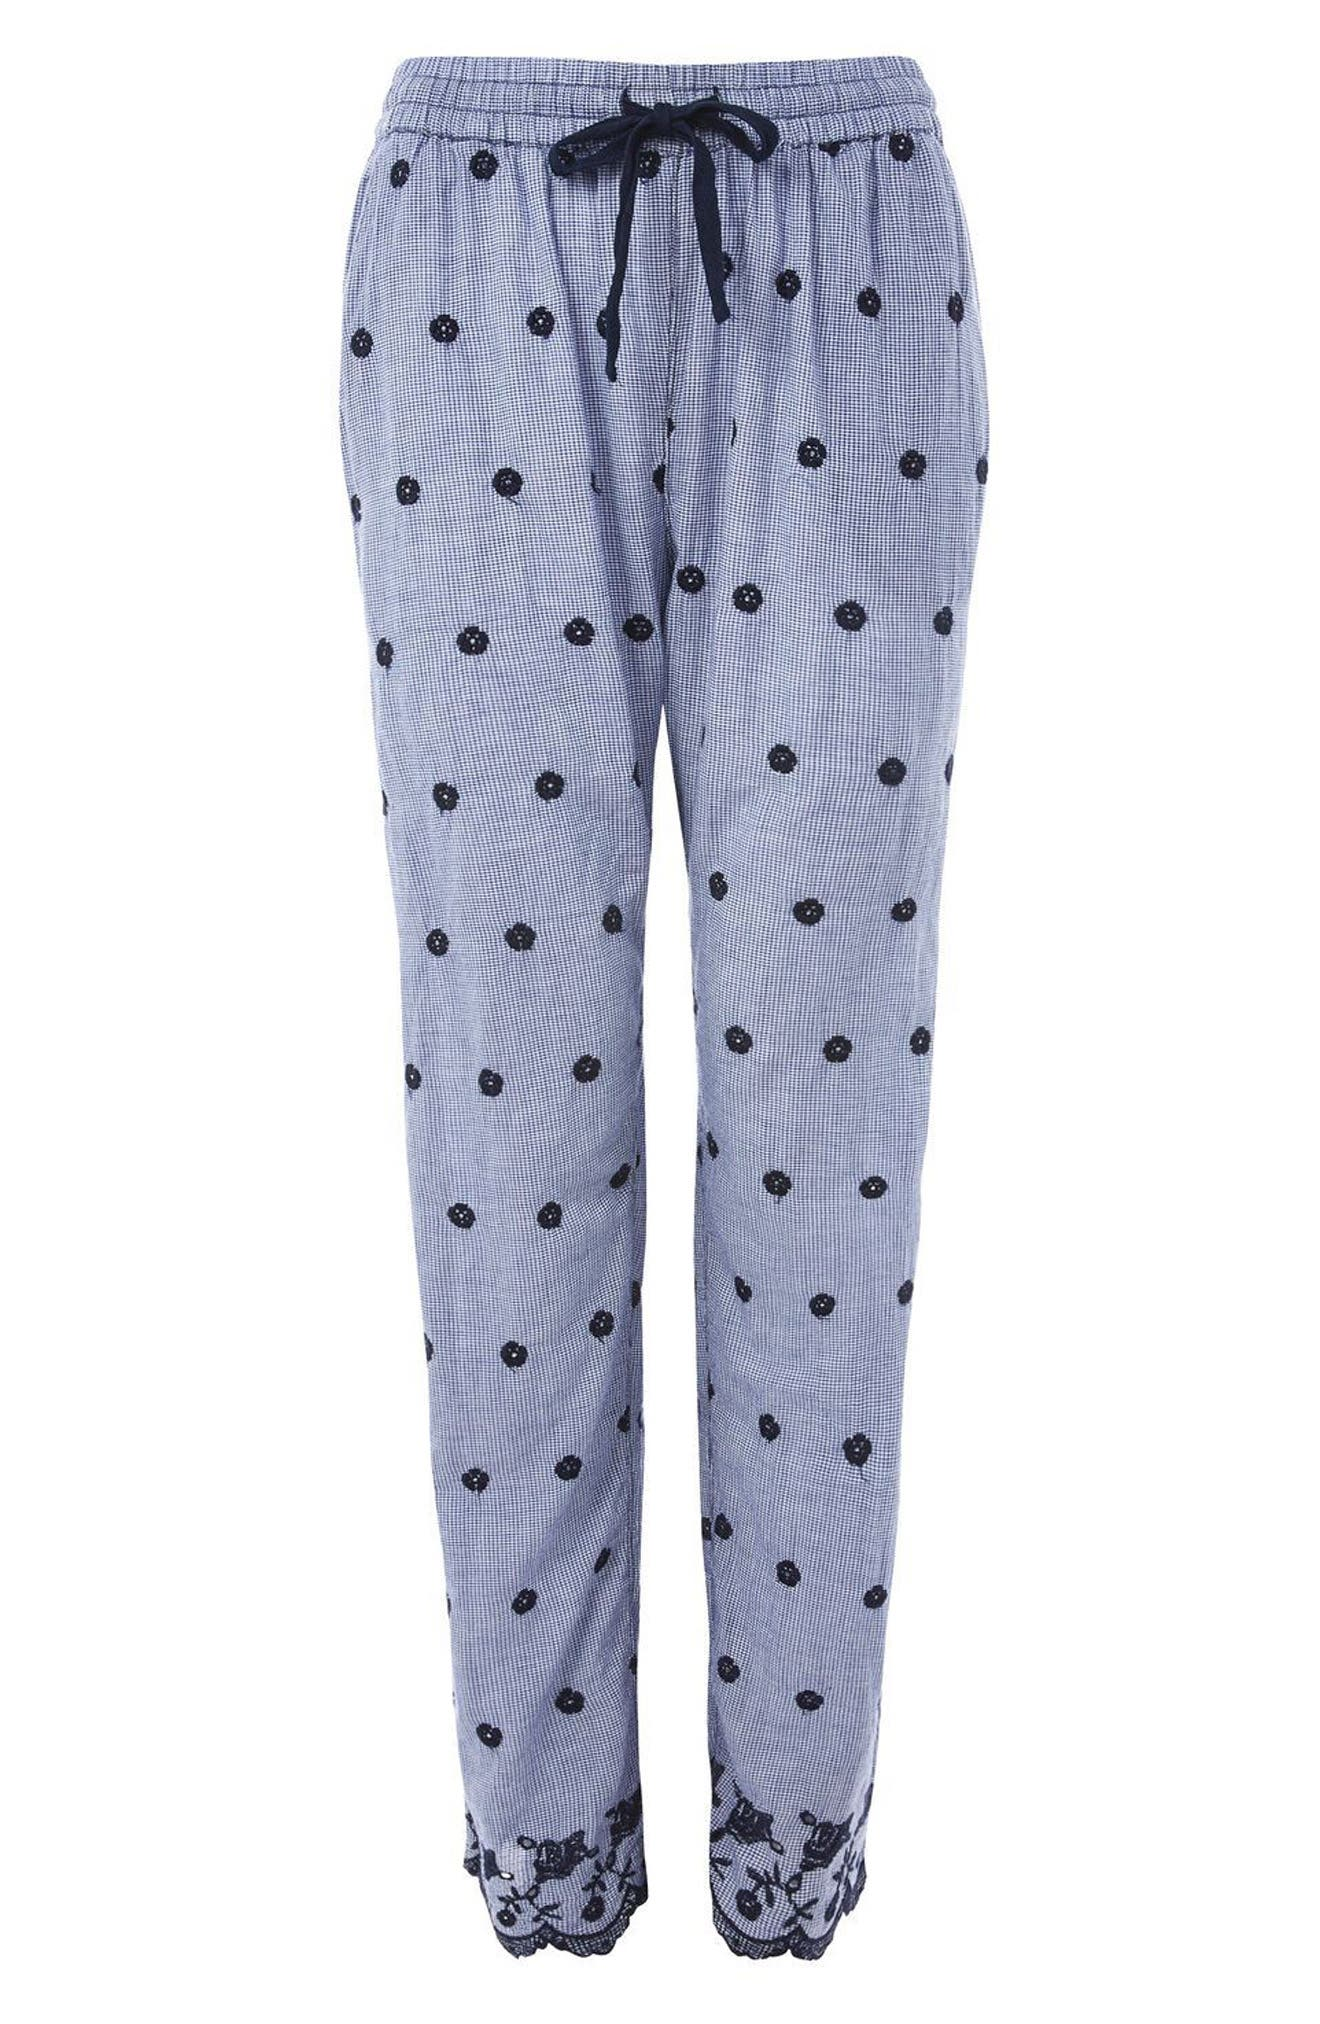 Embroidered Gingham Pajama Pants,                             Alternate thumbnail 3, color,                             410